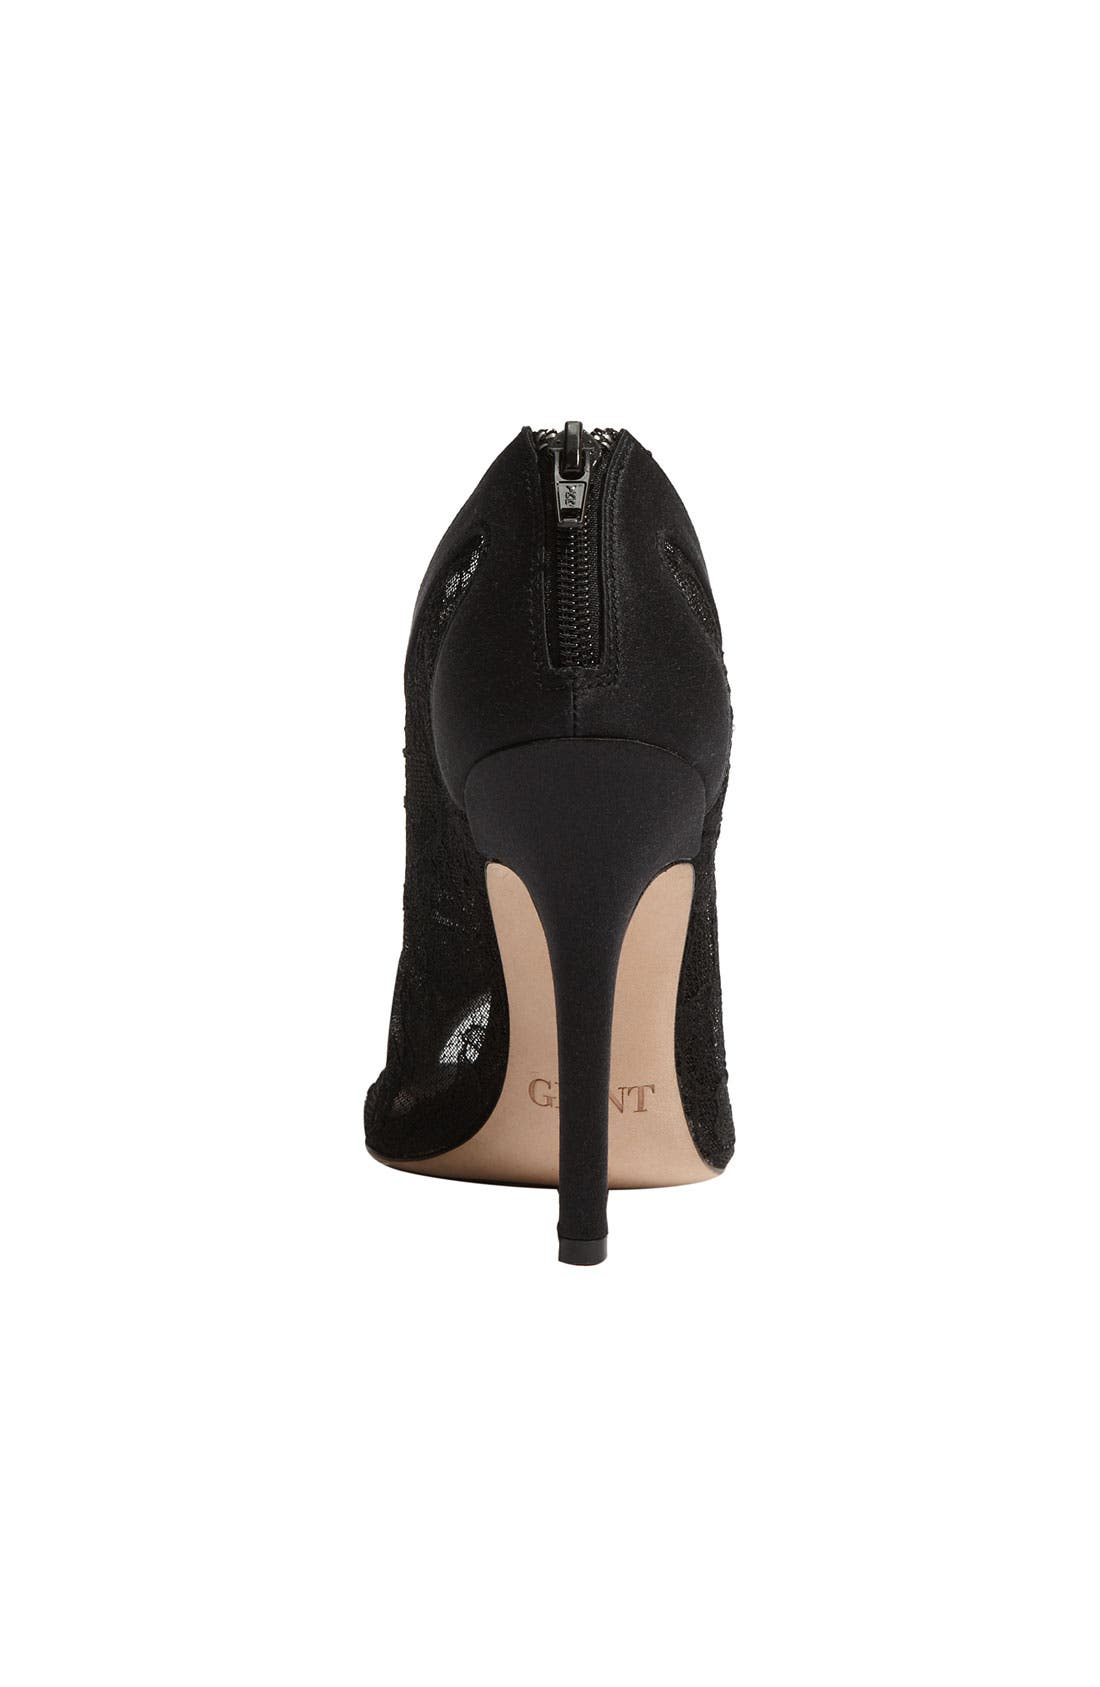 'Trio' Peep Toe Bootie,                             Alternate thumbnail 4, color,